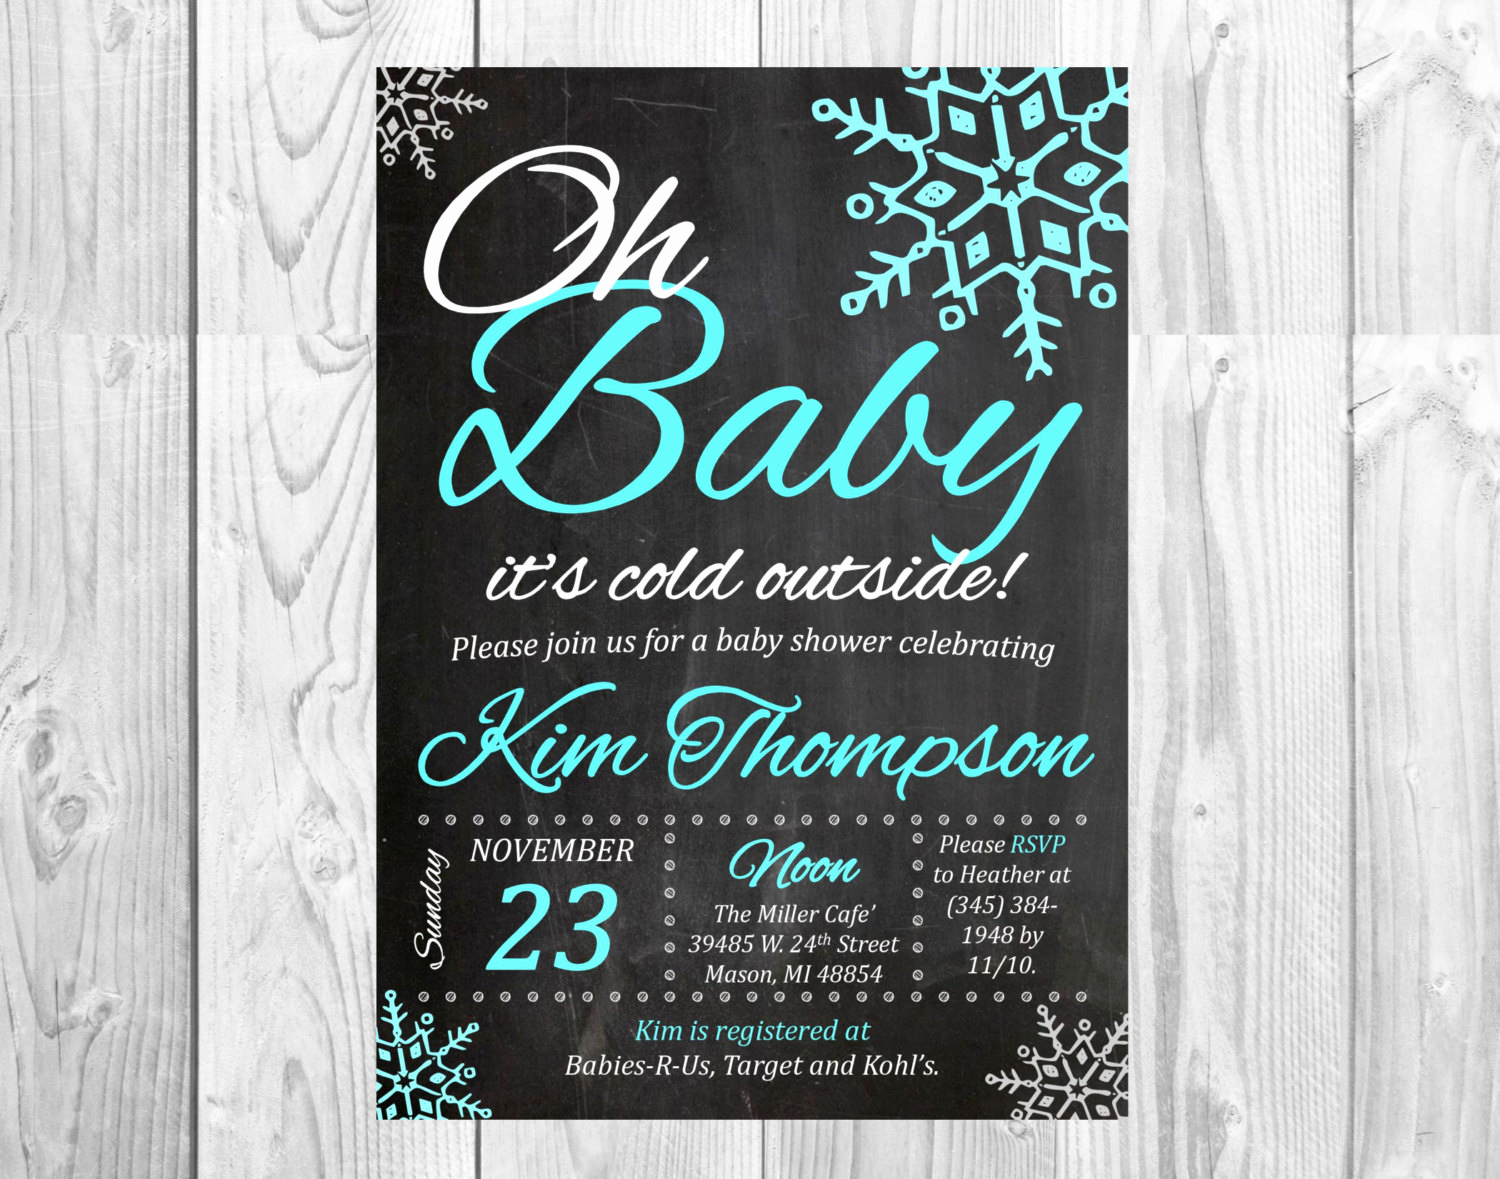 Winter Wonderland Baby Shower Invitation Awesome Winter Wonderland Baby Shower Chalkboard Invitation